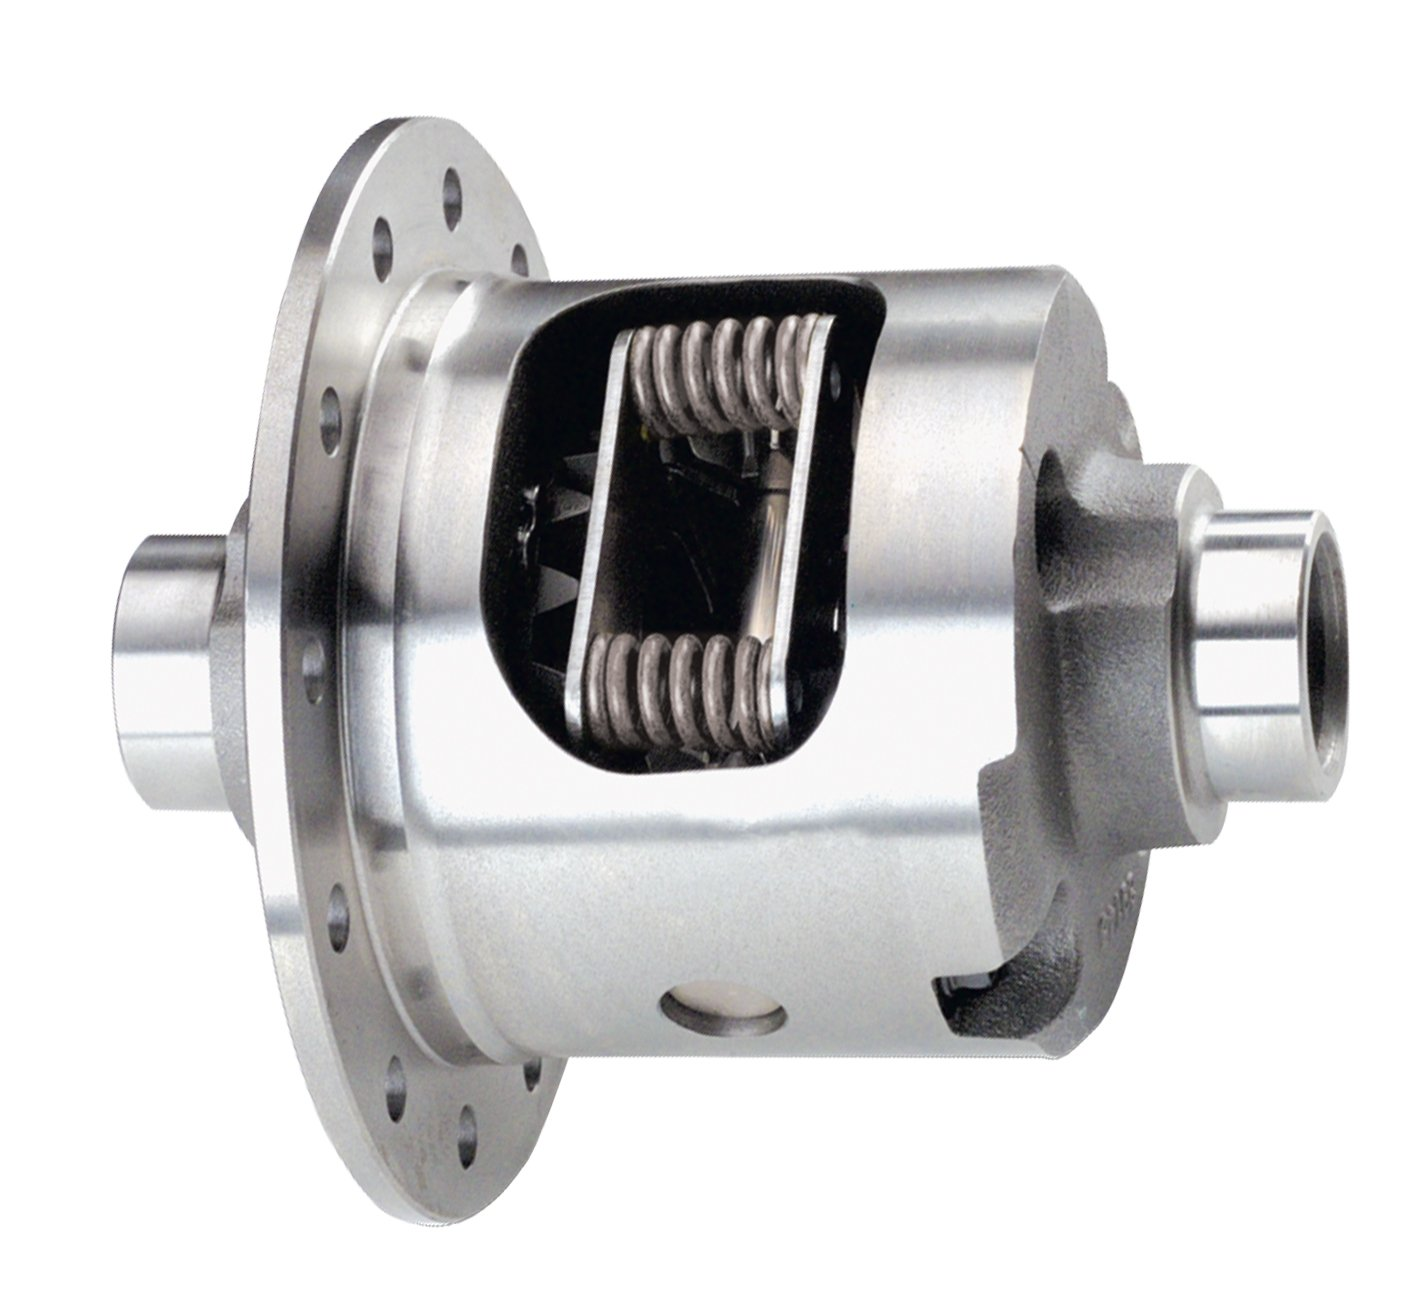 Detroit Locker 19588010 Posi Performance Limited Slip Differential with 31 Spline for Ford 8.8